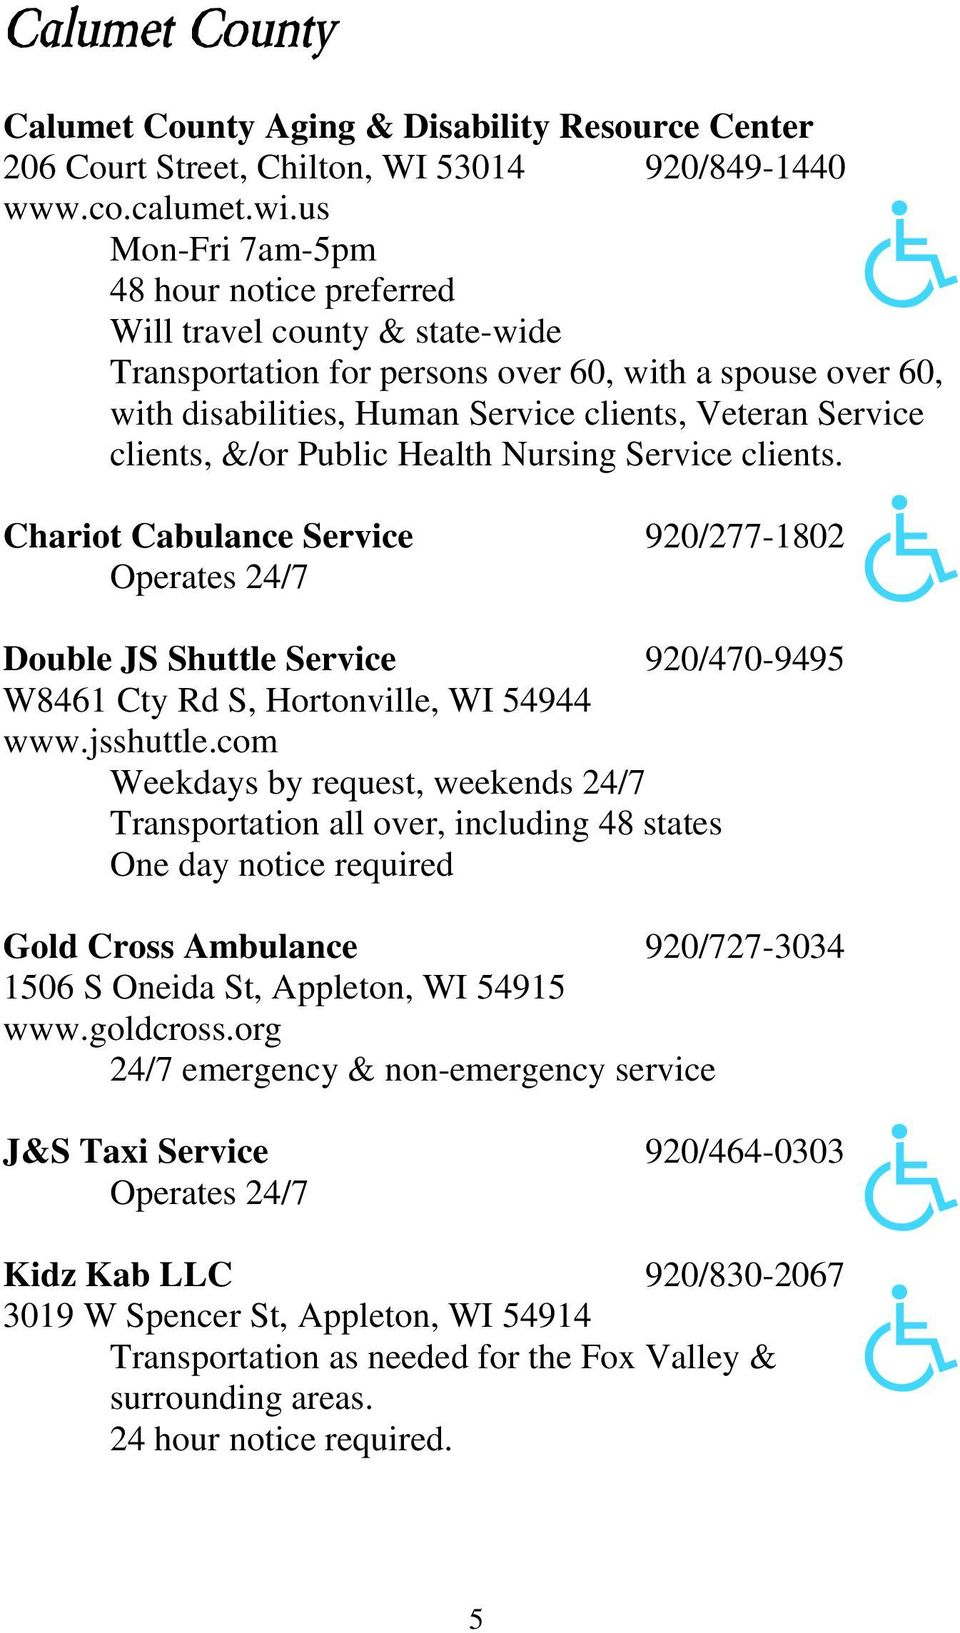 clients, &/or Public Health Nursing Service clients. Chariot Cabulance Service 920/277-1802 Operates 24/7 Double JS Shuttle Service 920/470-9495 W8461 Cty Rd S, Hortonville, WI 54944 www.jsshuttle.